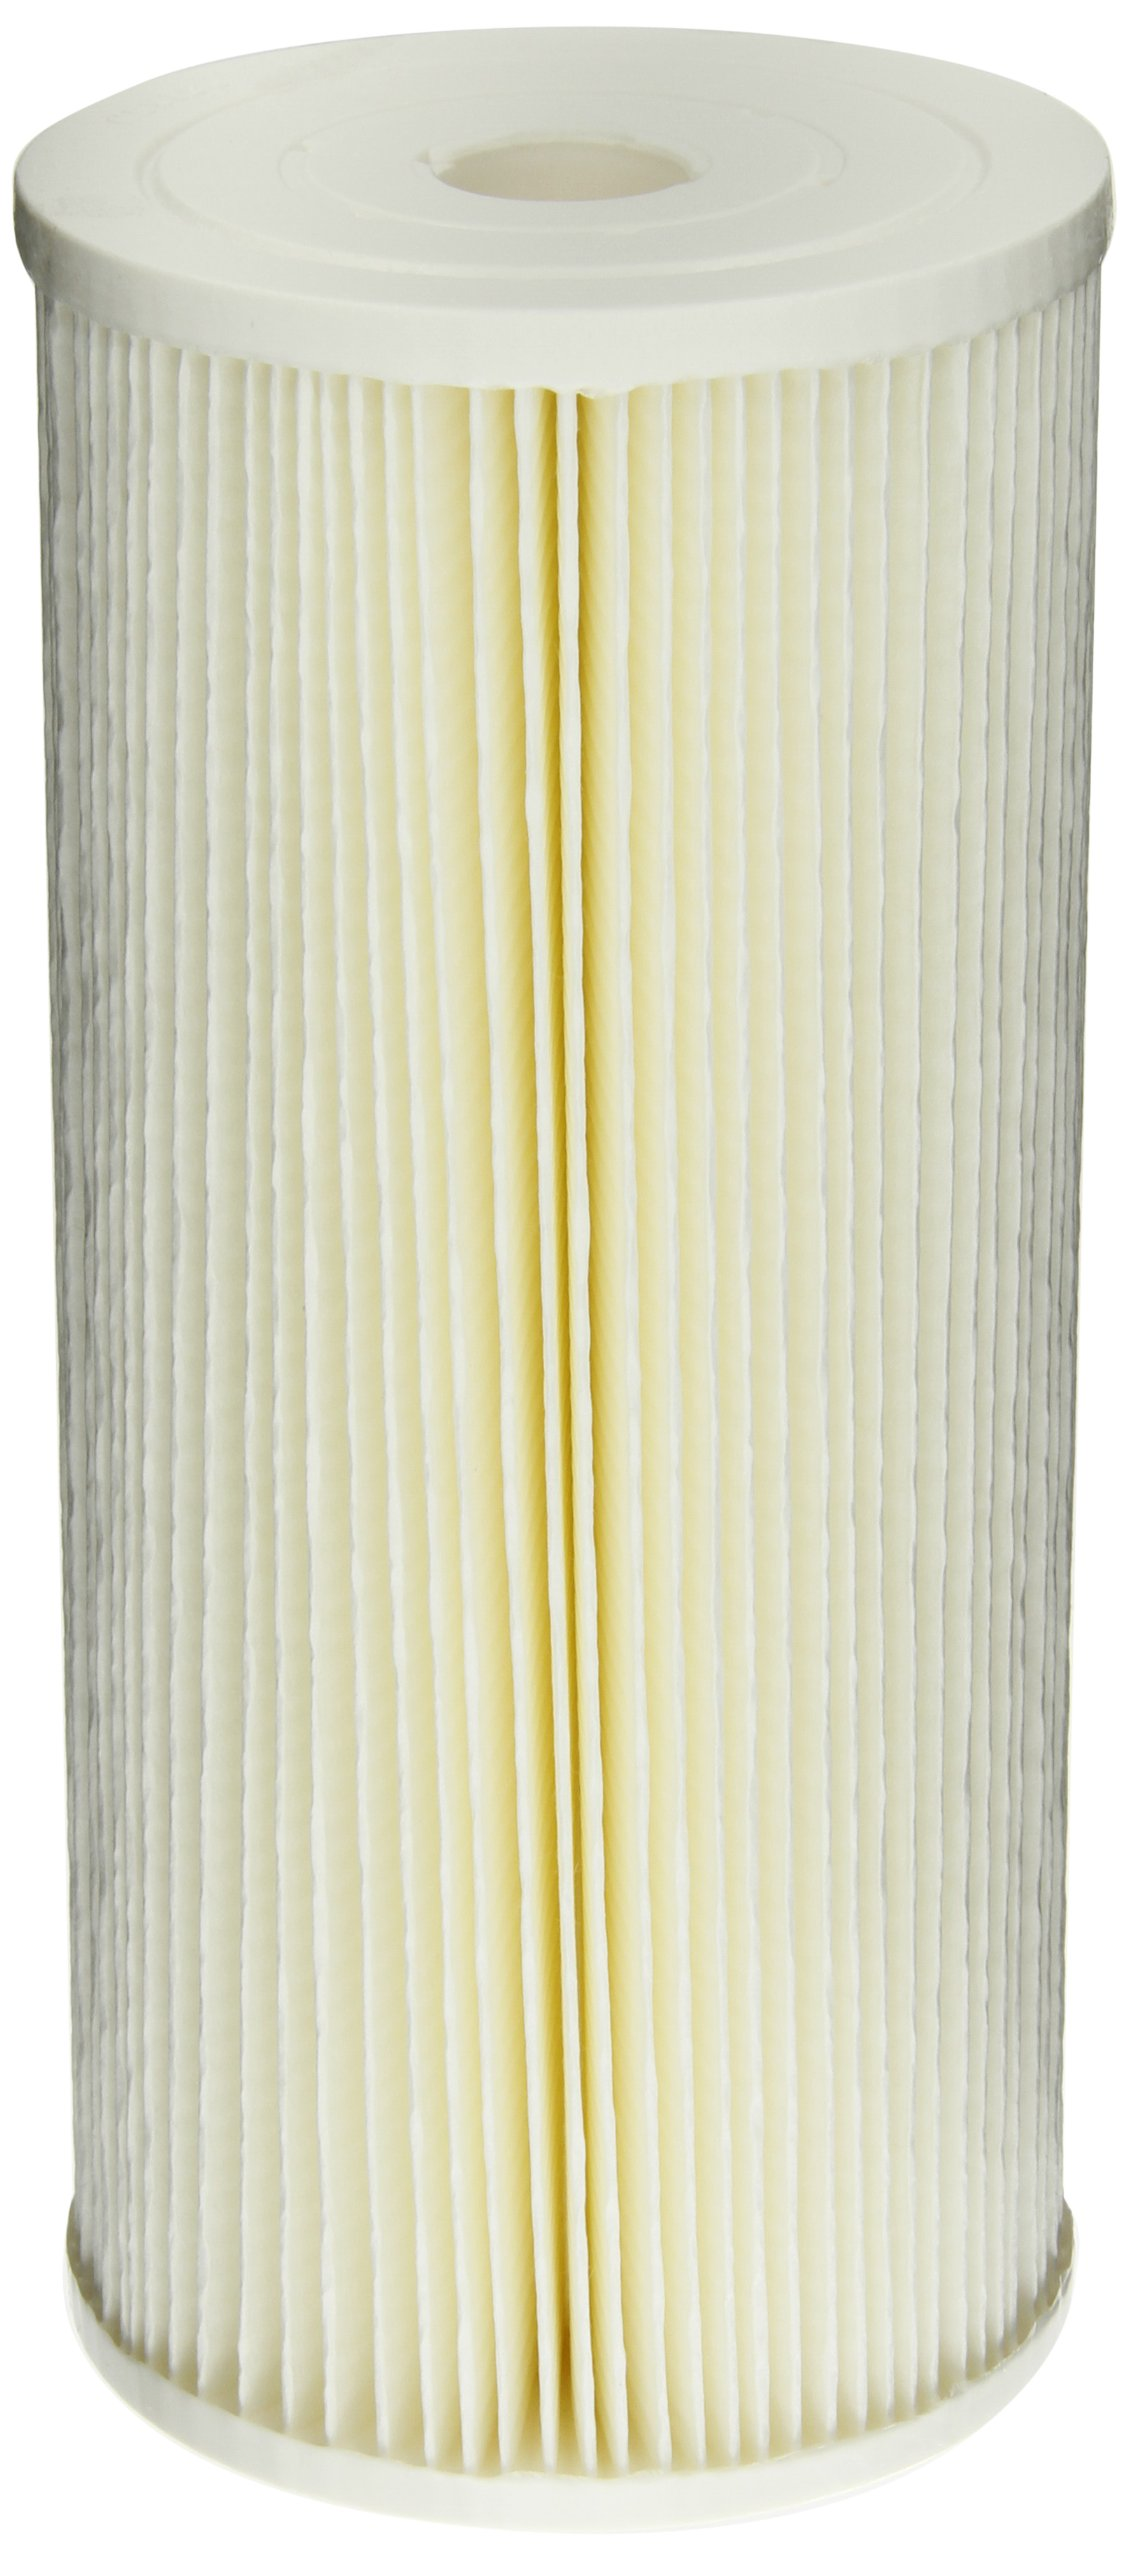 Pentek ECP5-BB Pleated Cellulose Polyester Filter Cartridge, 9-3/4'' x 4-1/2'', 5 Microns by Pentek